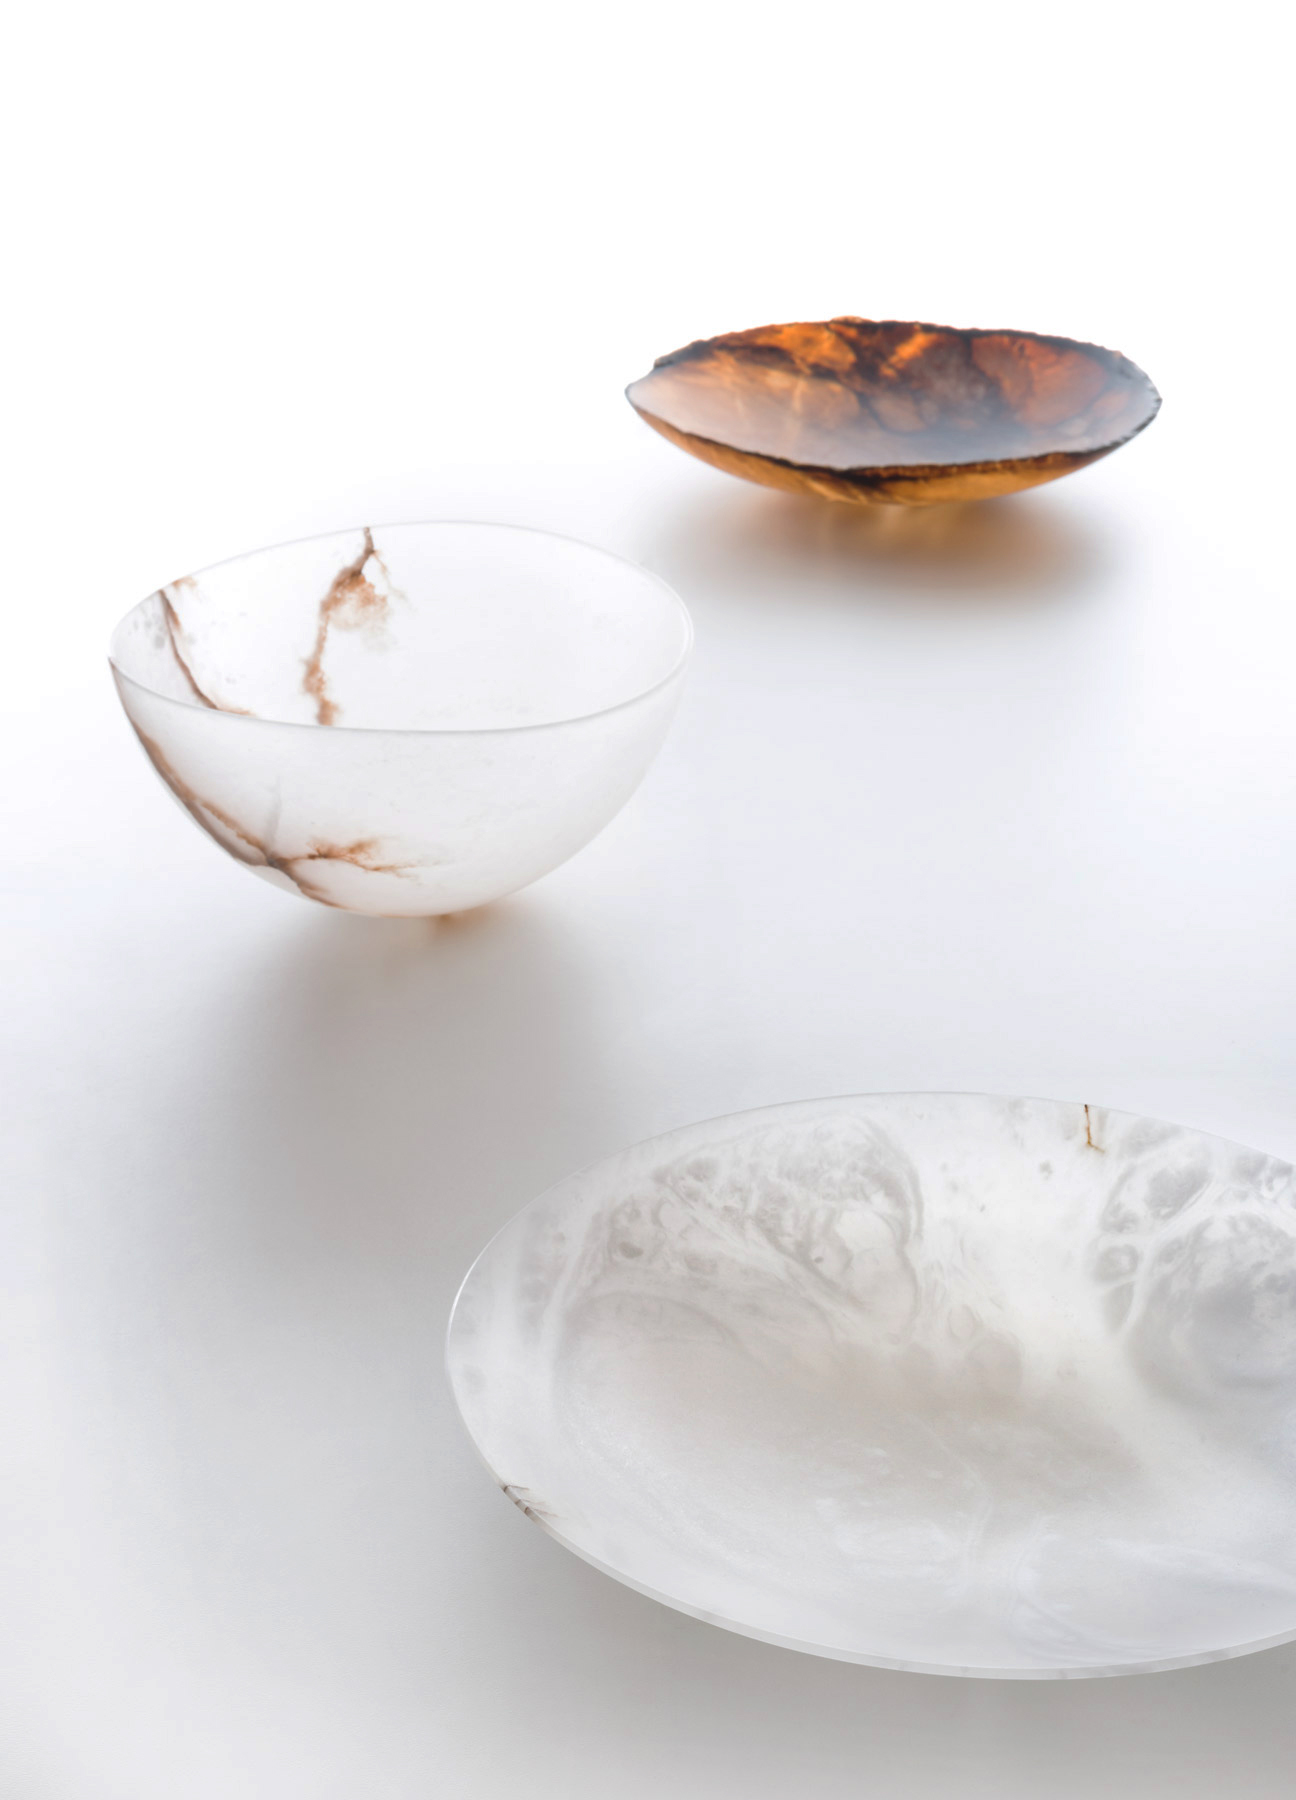 """Agata Bowl - <p>Alabastri is a collection of centerpieces made in Alabastro di Volterra (Italy)<br /> This sedimentary rock formed millions of years ago is found in caves or tunnels in the form of large ovoid blocks - called """"arnioni"""" - which are extracted and then processed following the traditional techniques. Each piece is handmade, finished and polished with a special abrasive dust that makes each piece smooth and velvety.</p>    Matter of Stuff"""